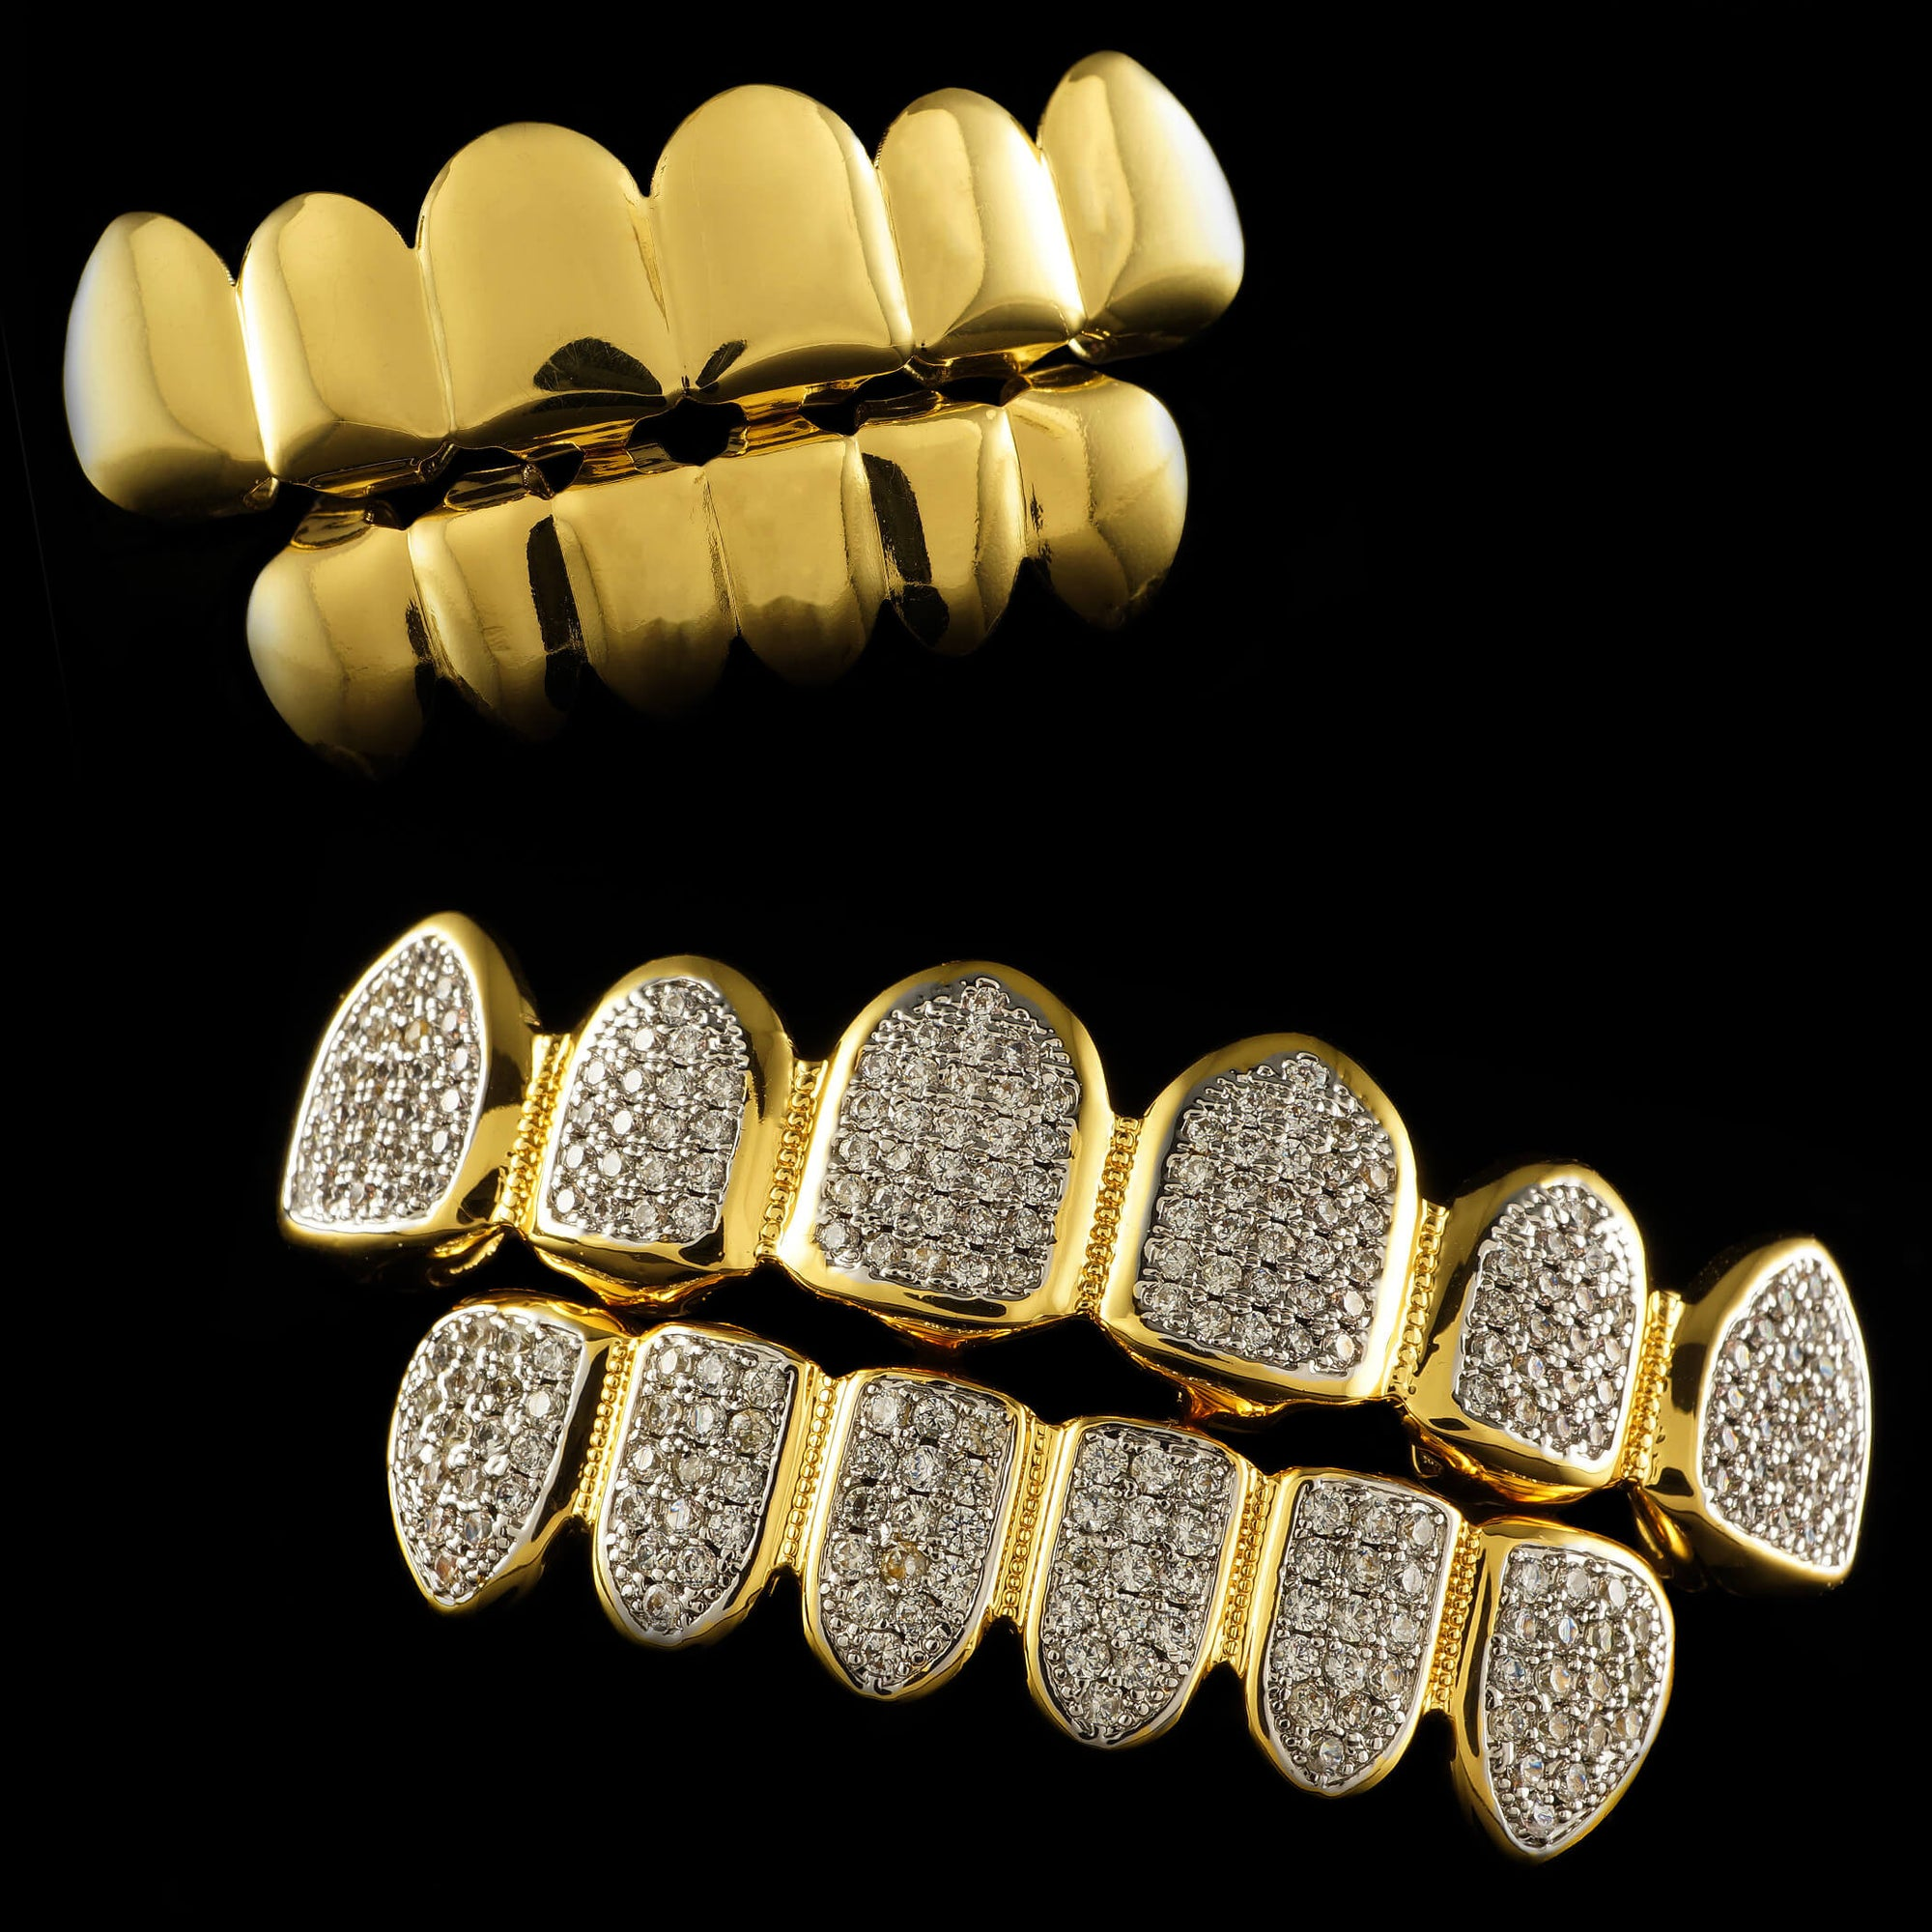 18k Stainless Steel Grillz vs 14k Gold Plated Grillz